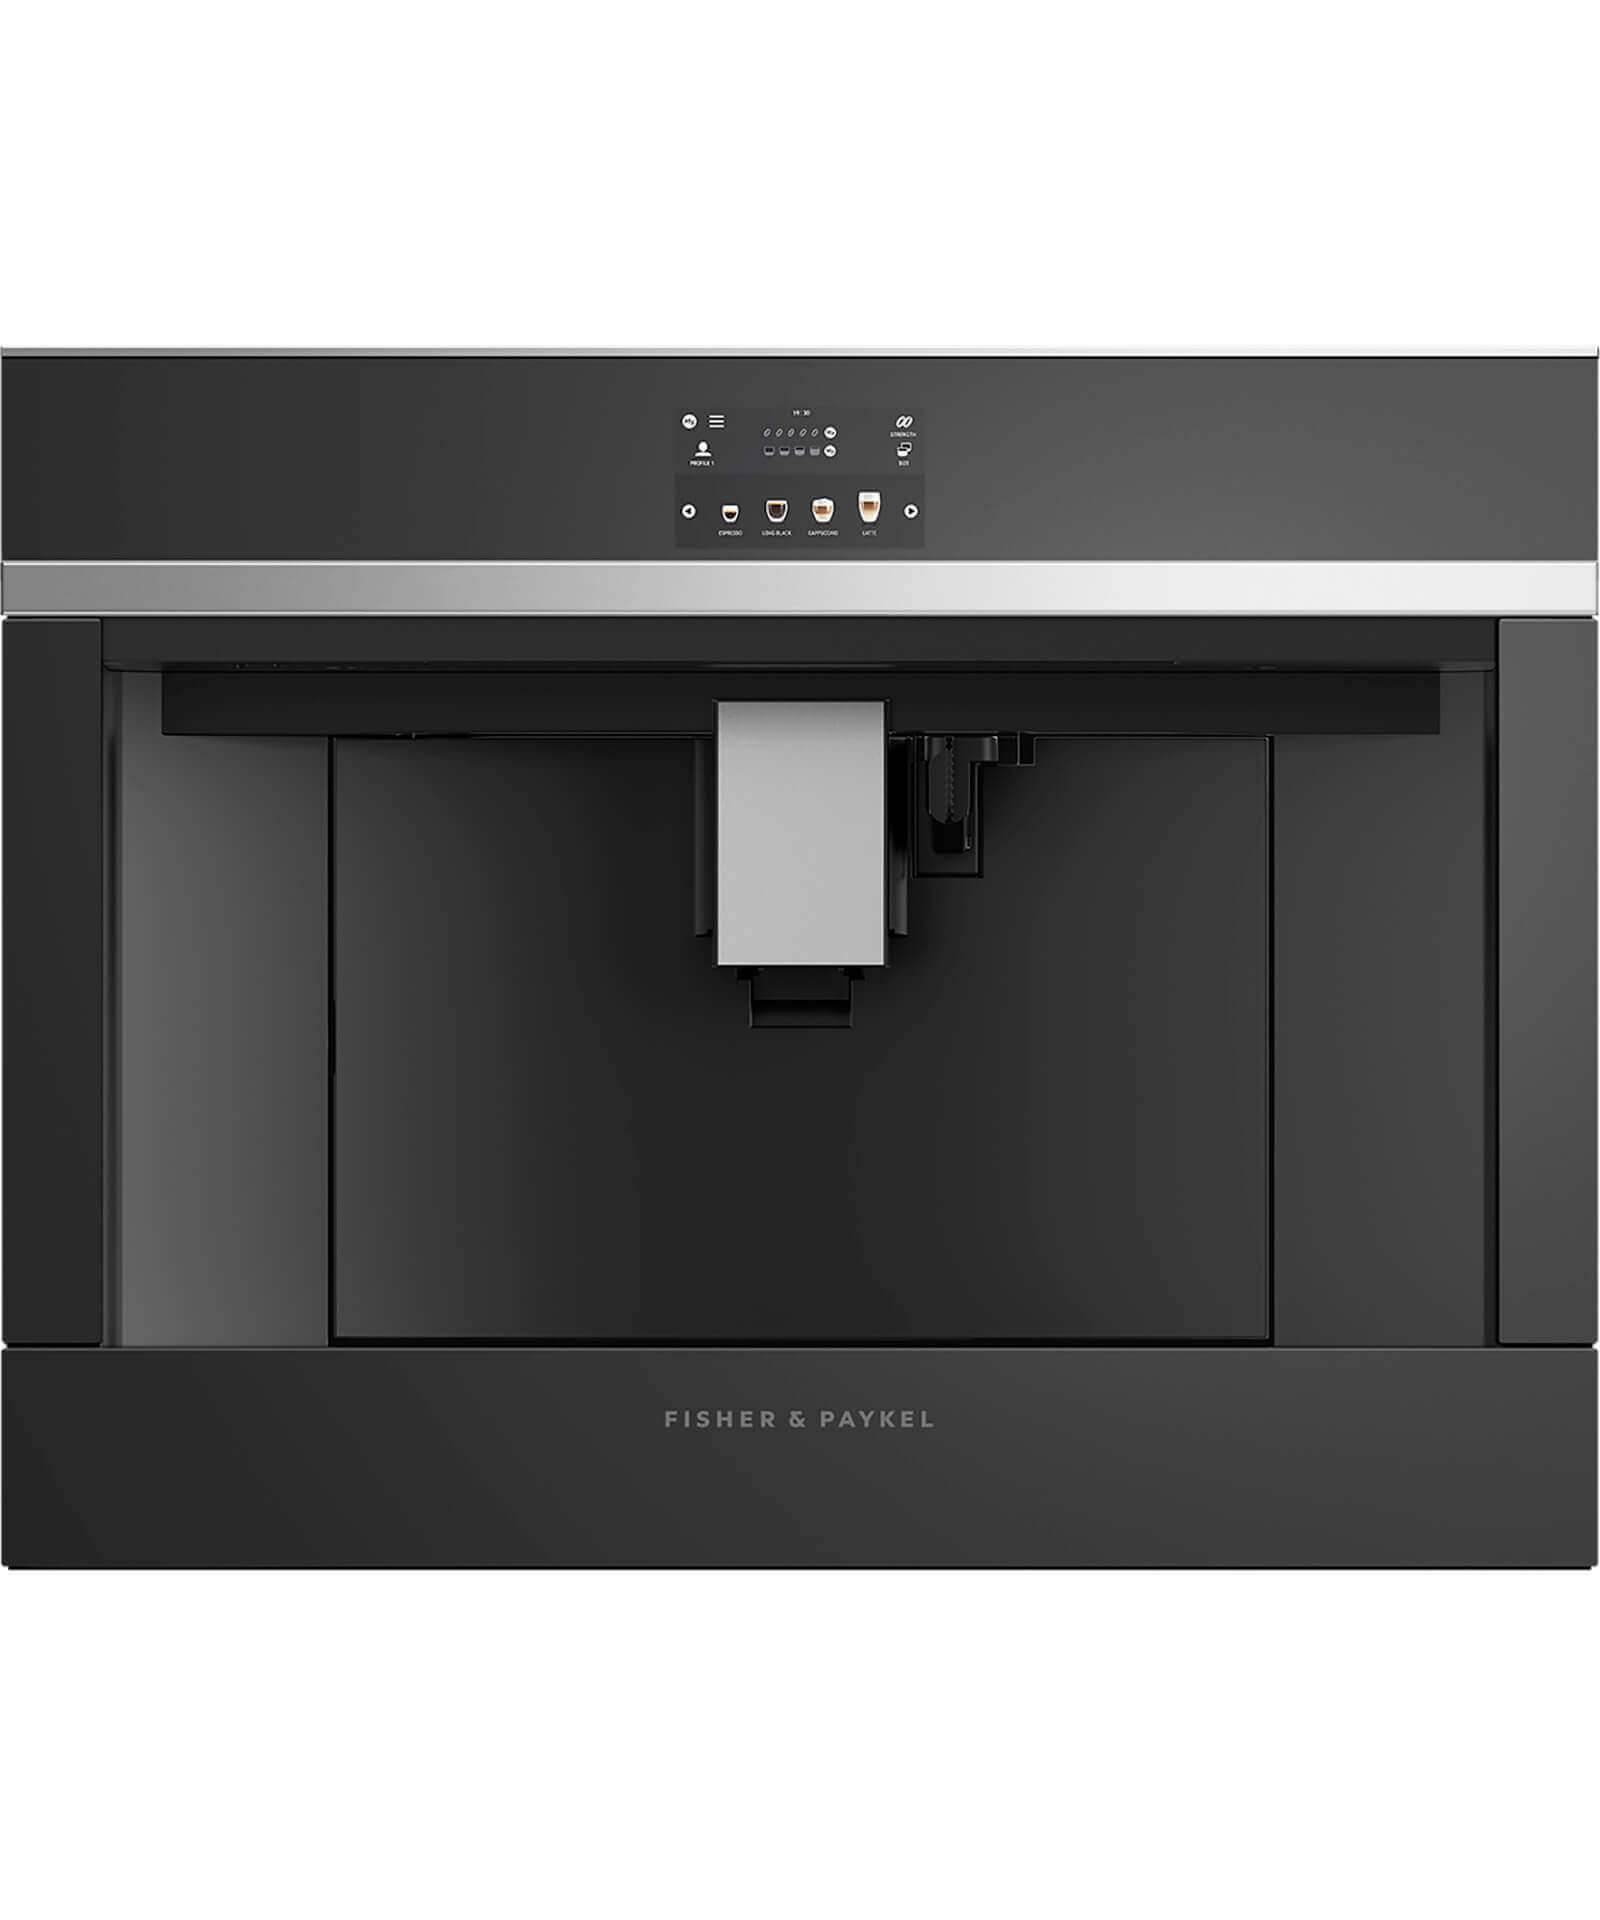 Fisher and Paykel Fisher Paykel EB60DSXB2 Built In Coffee Machine